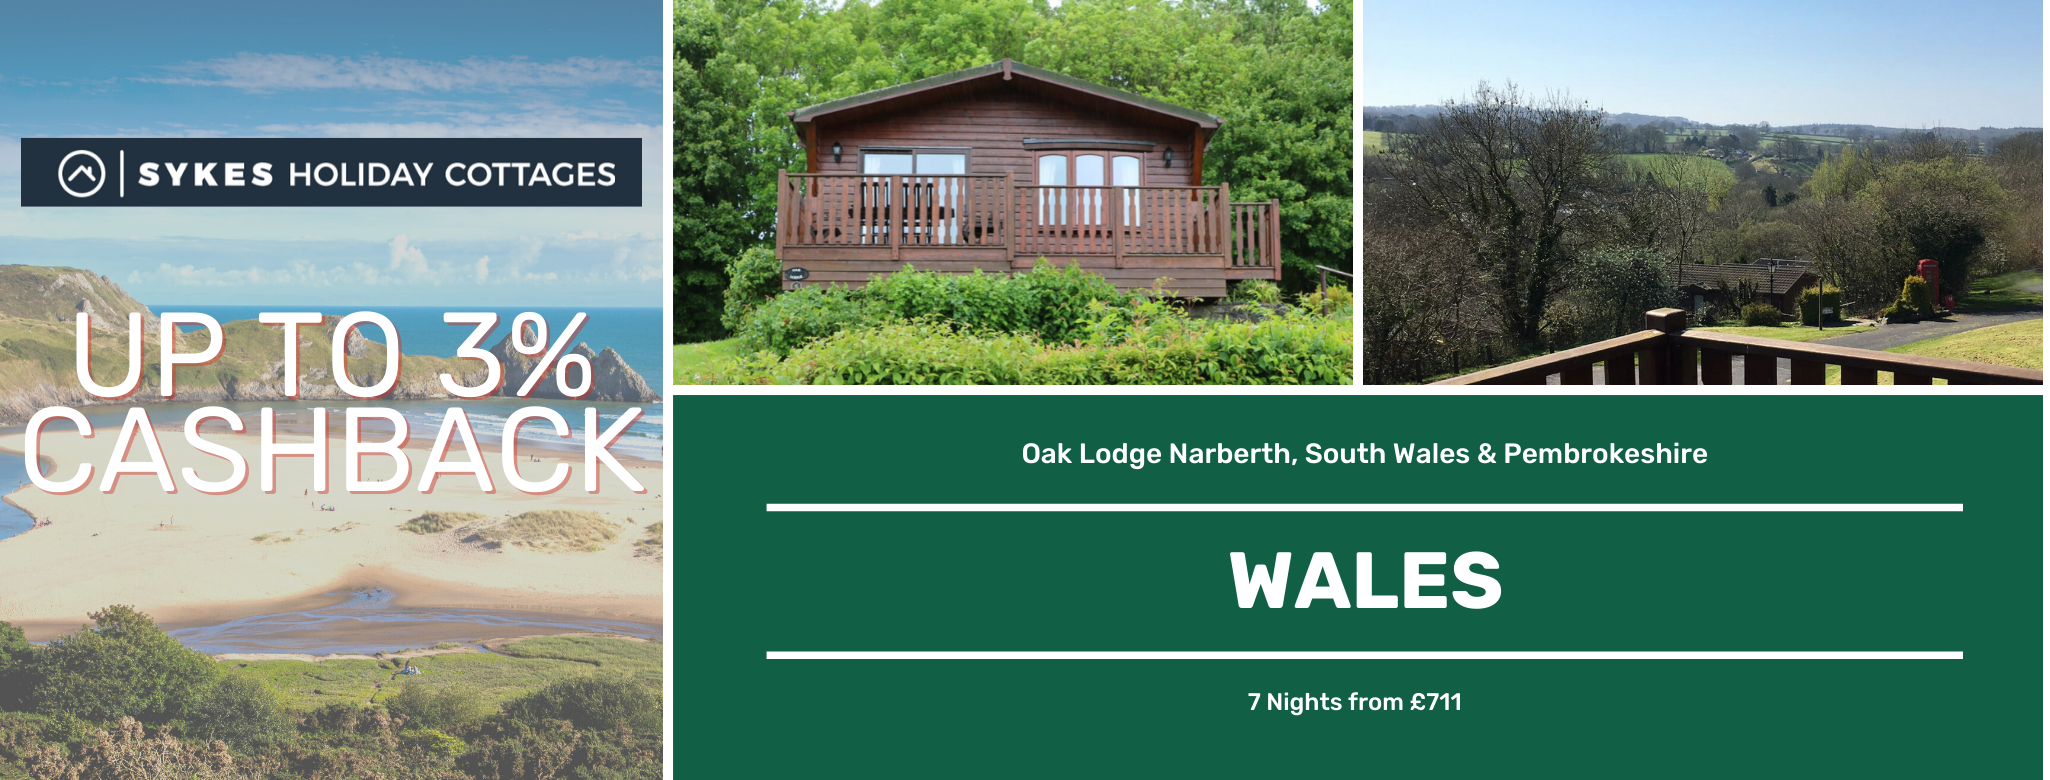 Sykes Holiday Cottages Wales Up to 3% Cashback